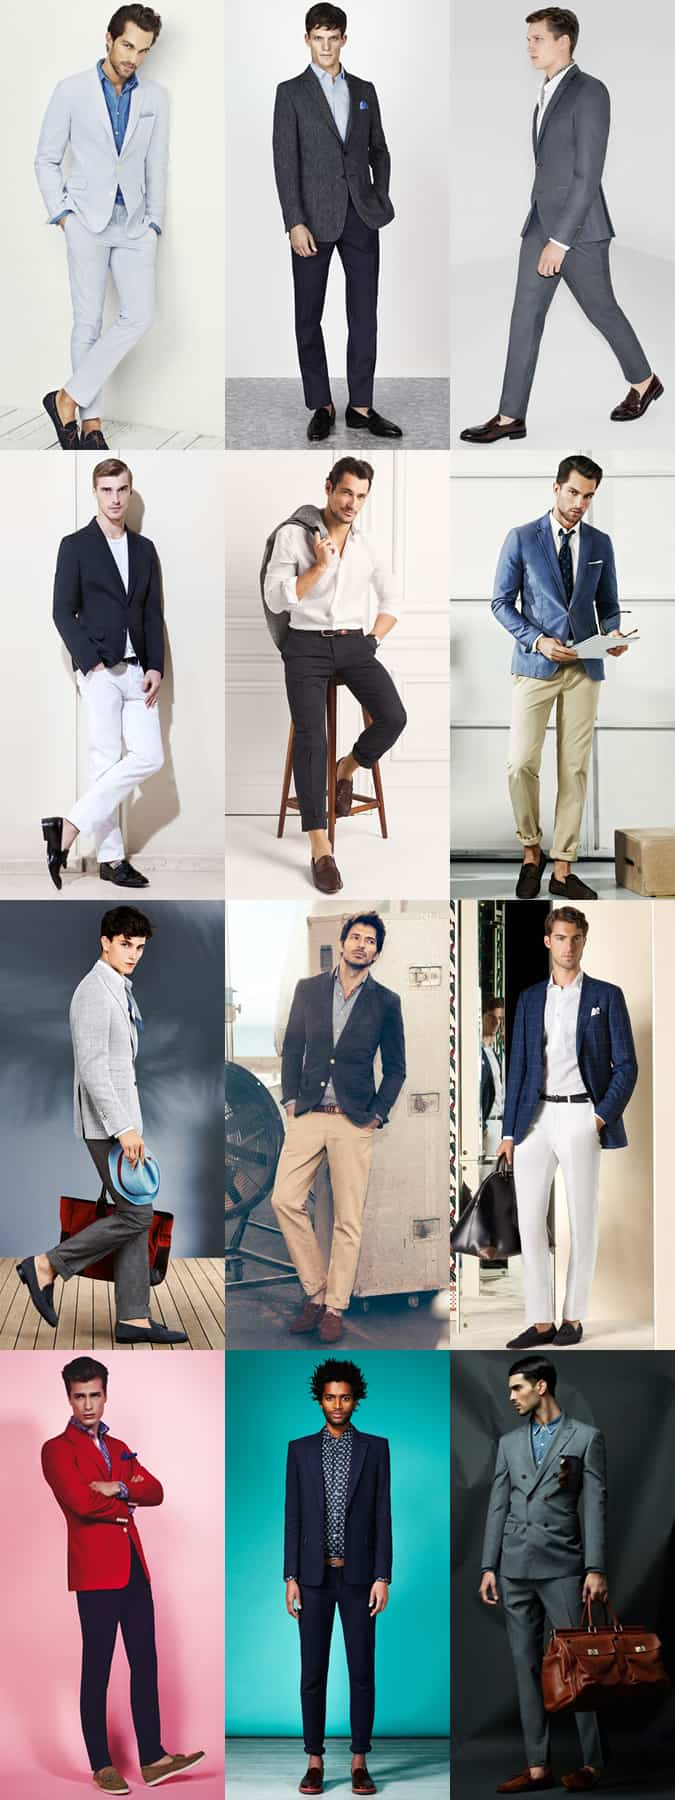 Men's Business-Casual and Formal Travelling Outfits